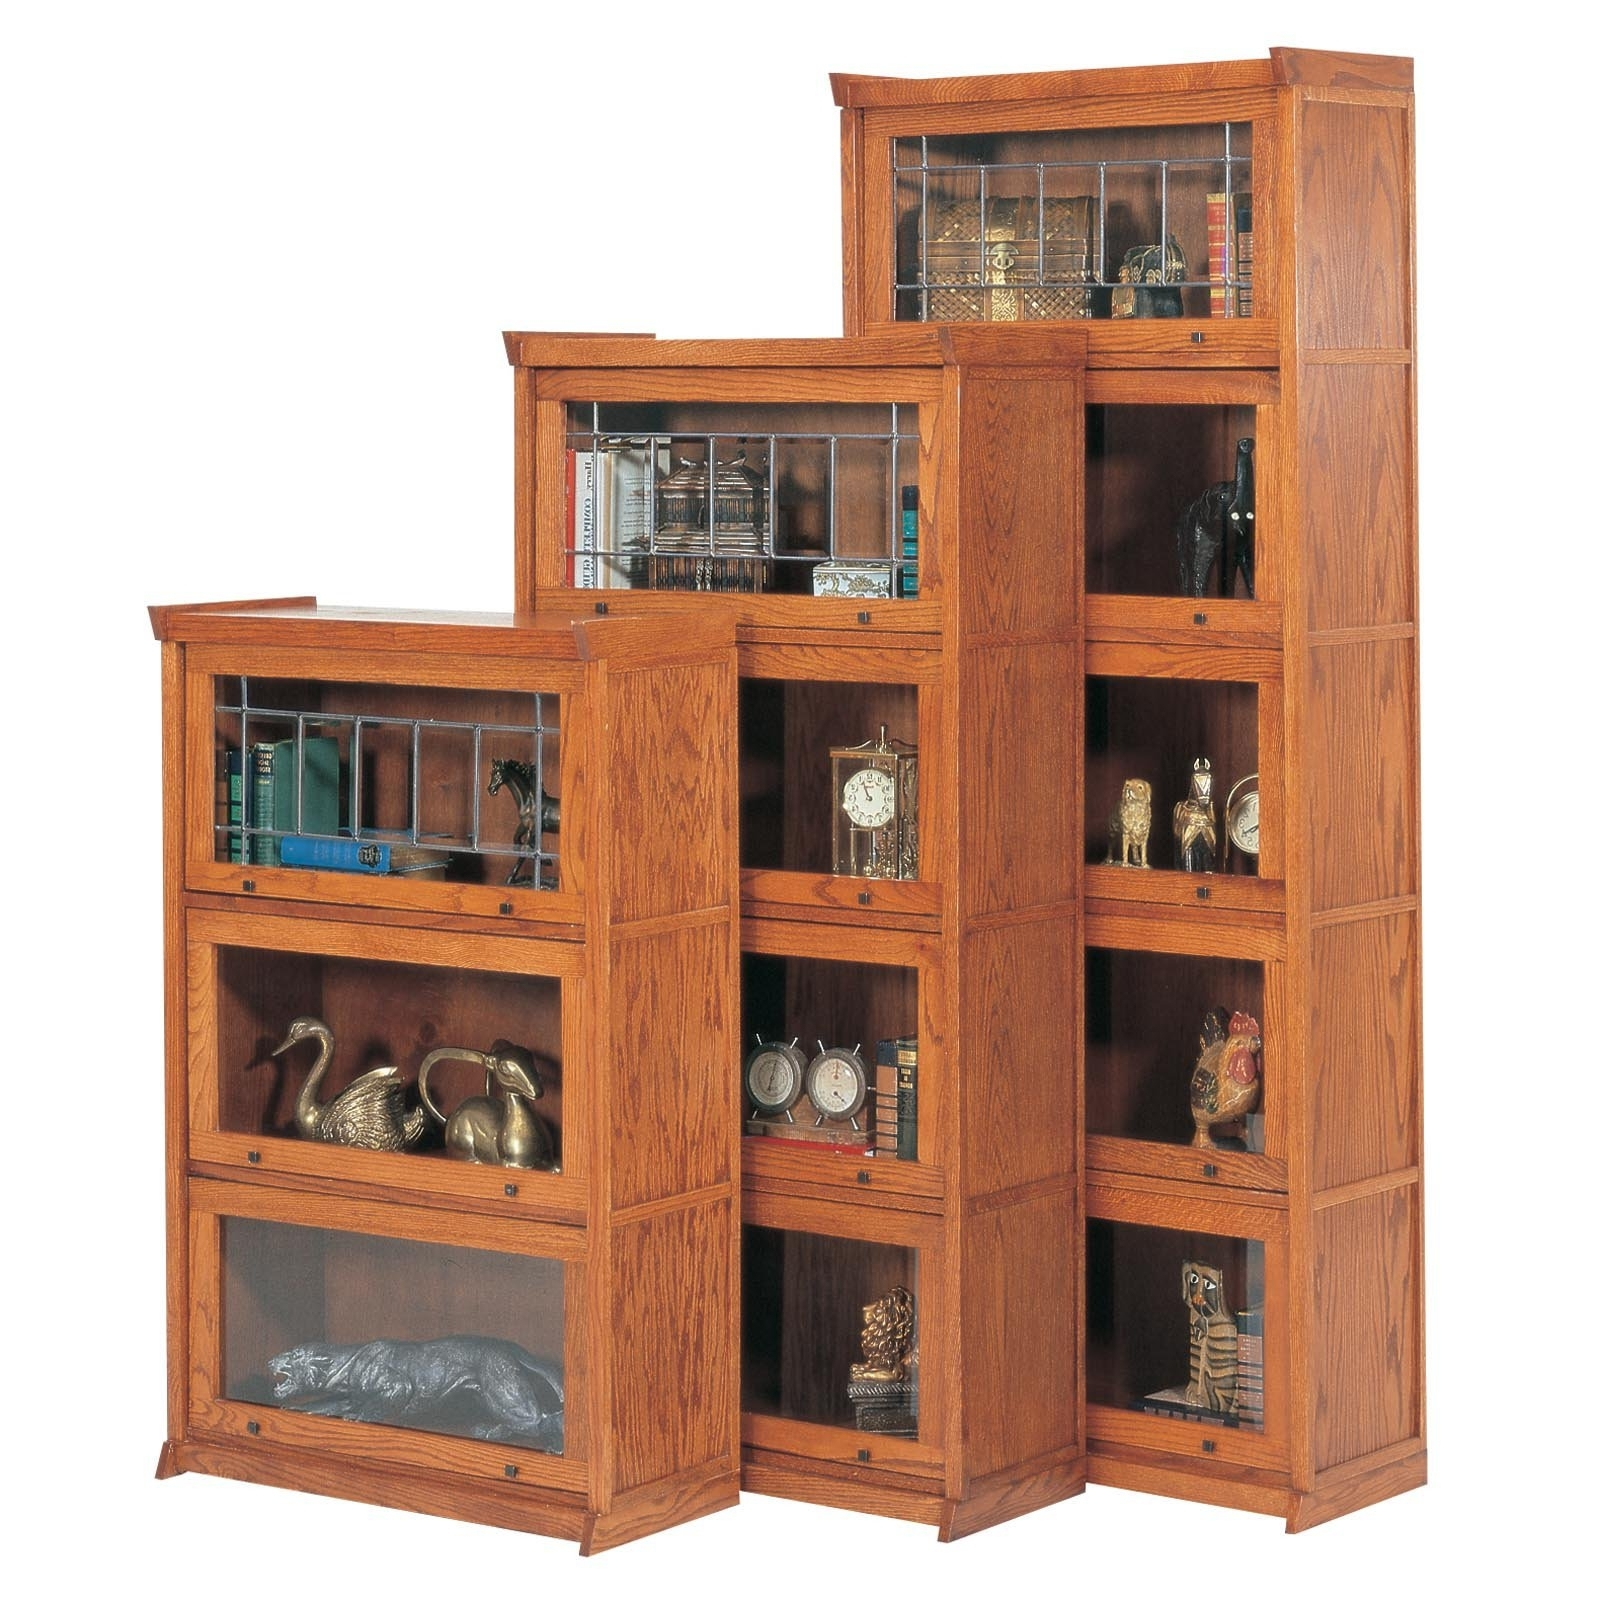 Famous Barrister Bookcase Image : Doherty House – Types Barrister Bookcase With Lawyers Bookcases (View 4 of 15)